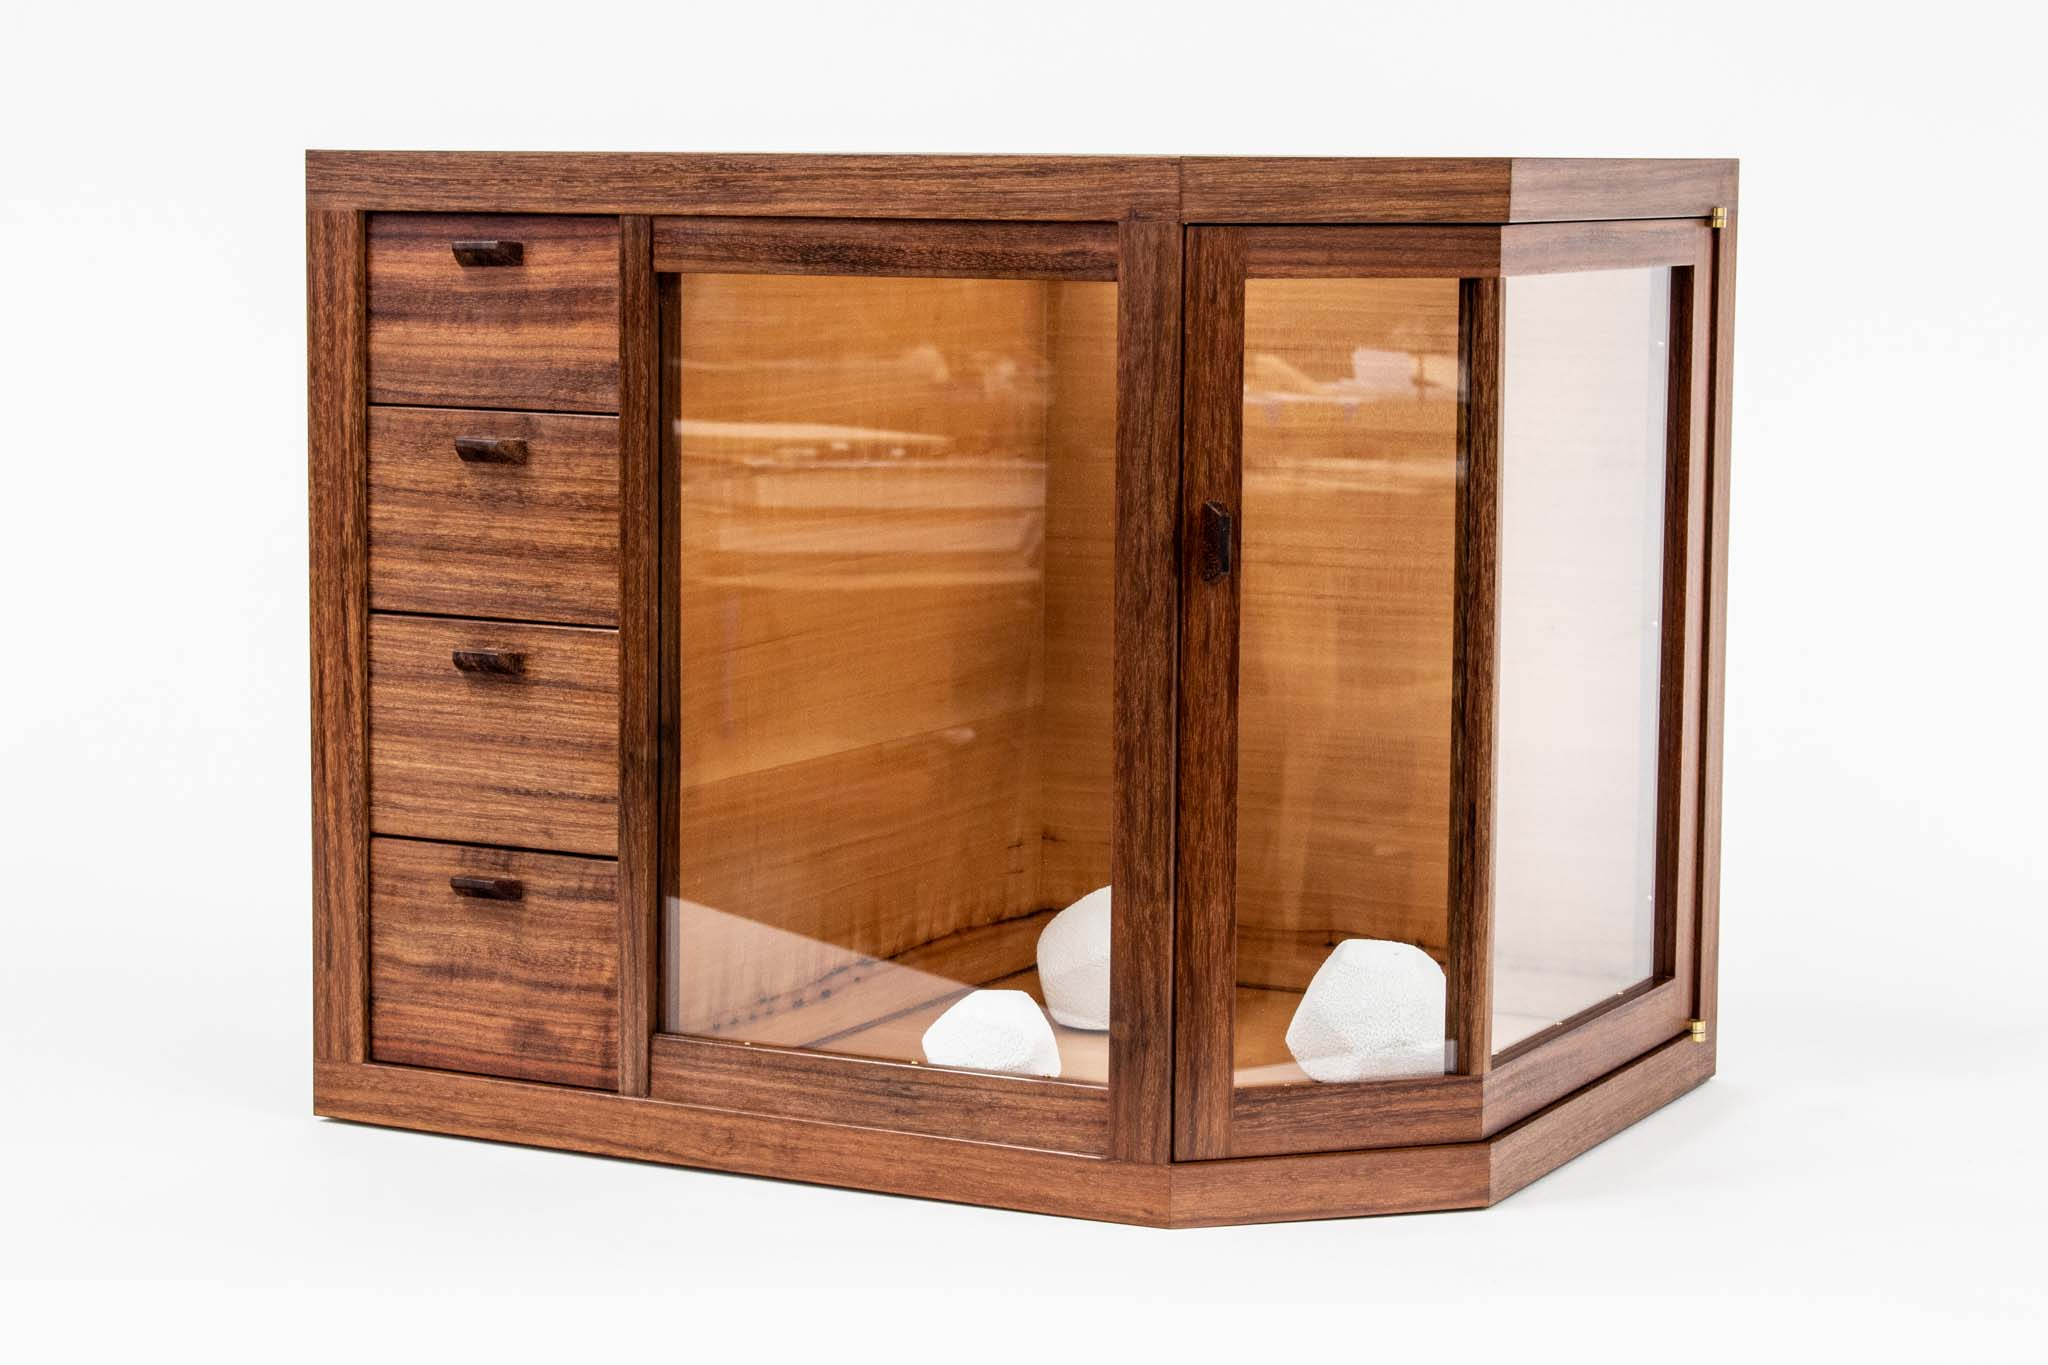 Irber granadillo glass cabinet